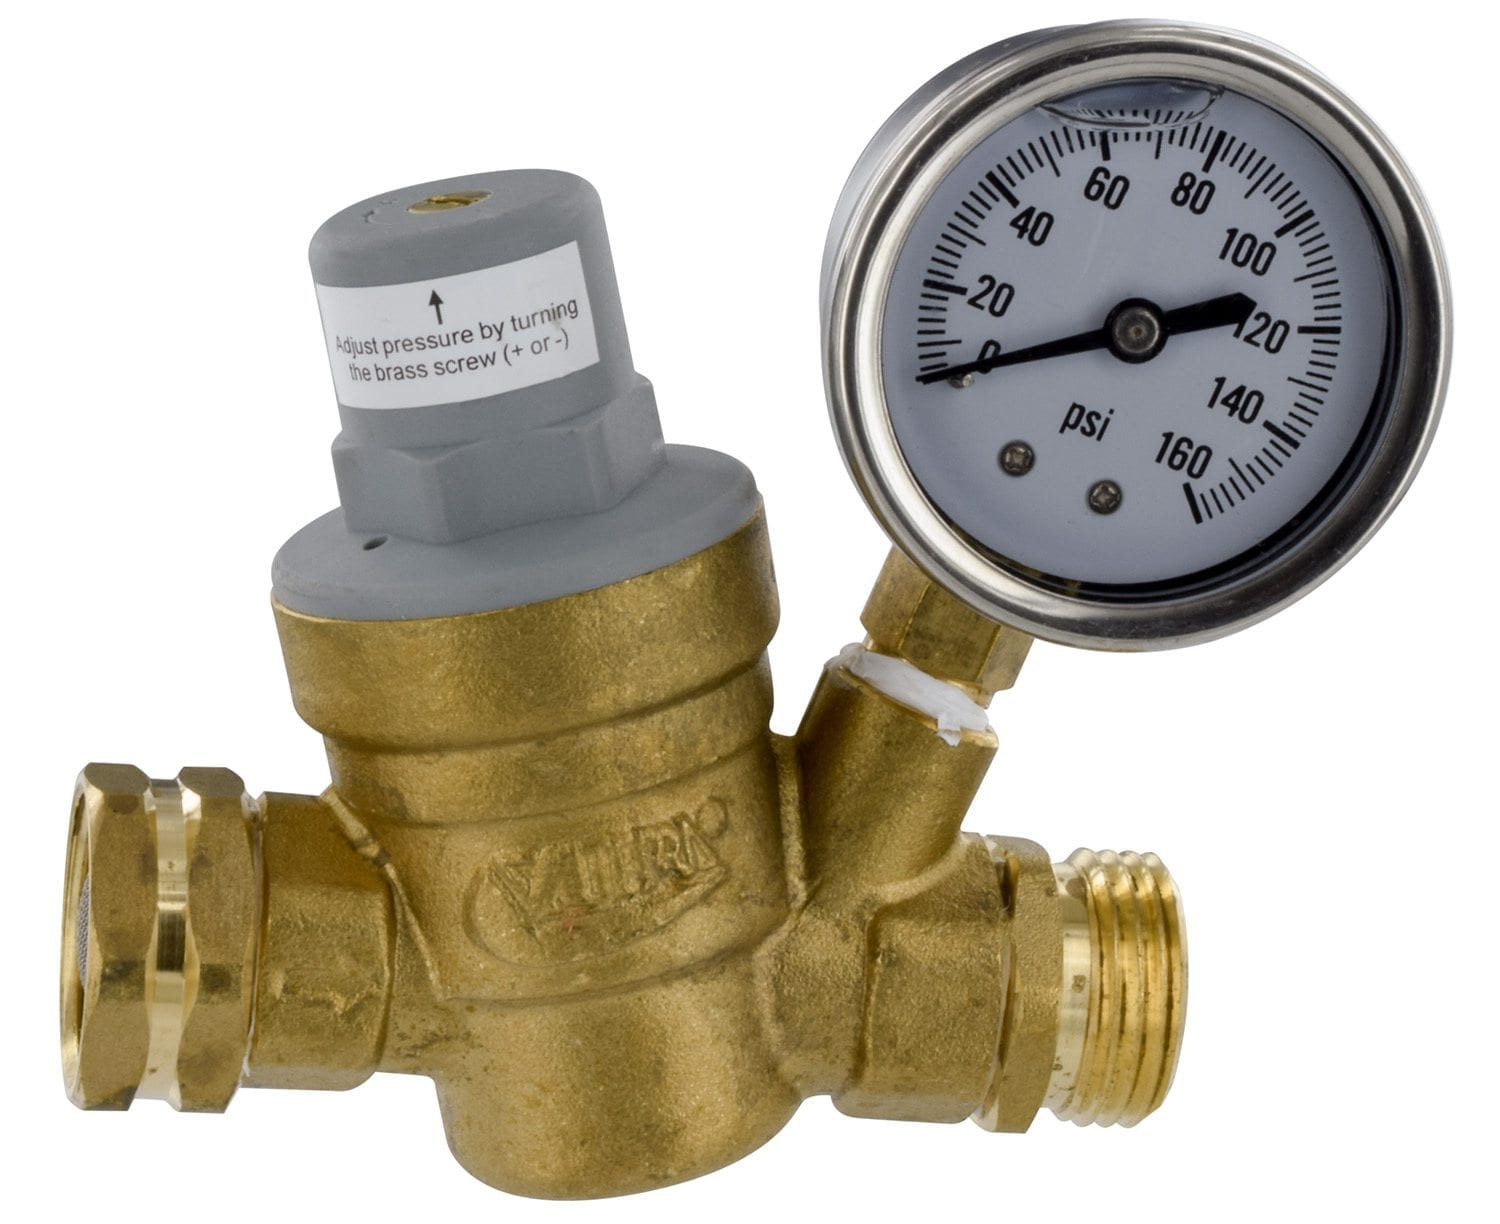 Valterra Adjustable RV Water Pressure Regulators